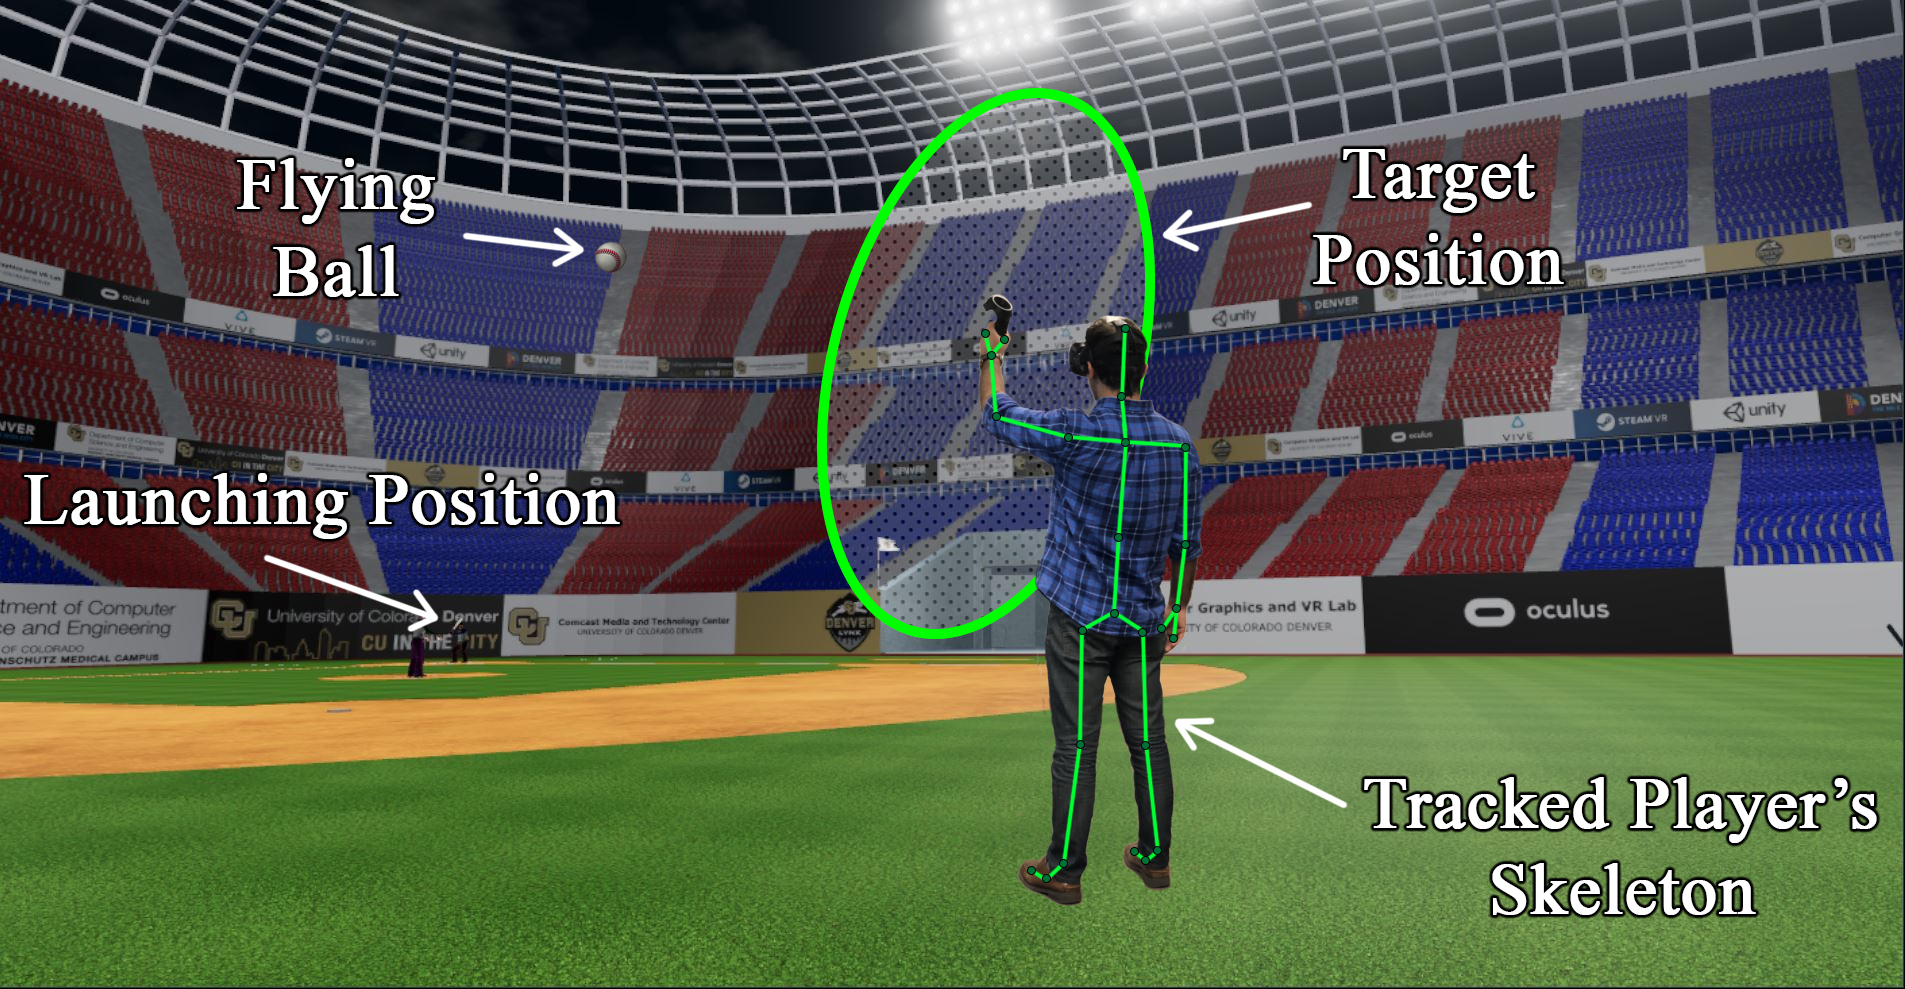 Virtual baseball environment for assessment of visual cognition and behavioral responses. The system analyzes the user's attention to the flying ball, responses to visual and spatial stimuli, and movement.